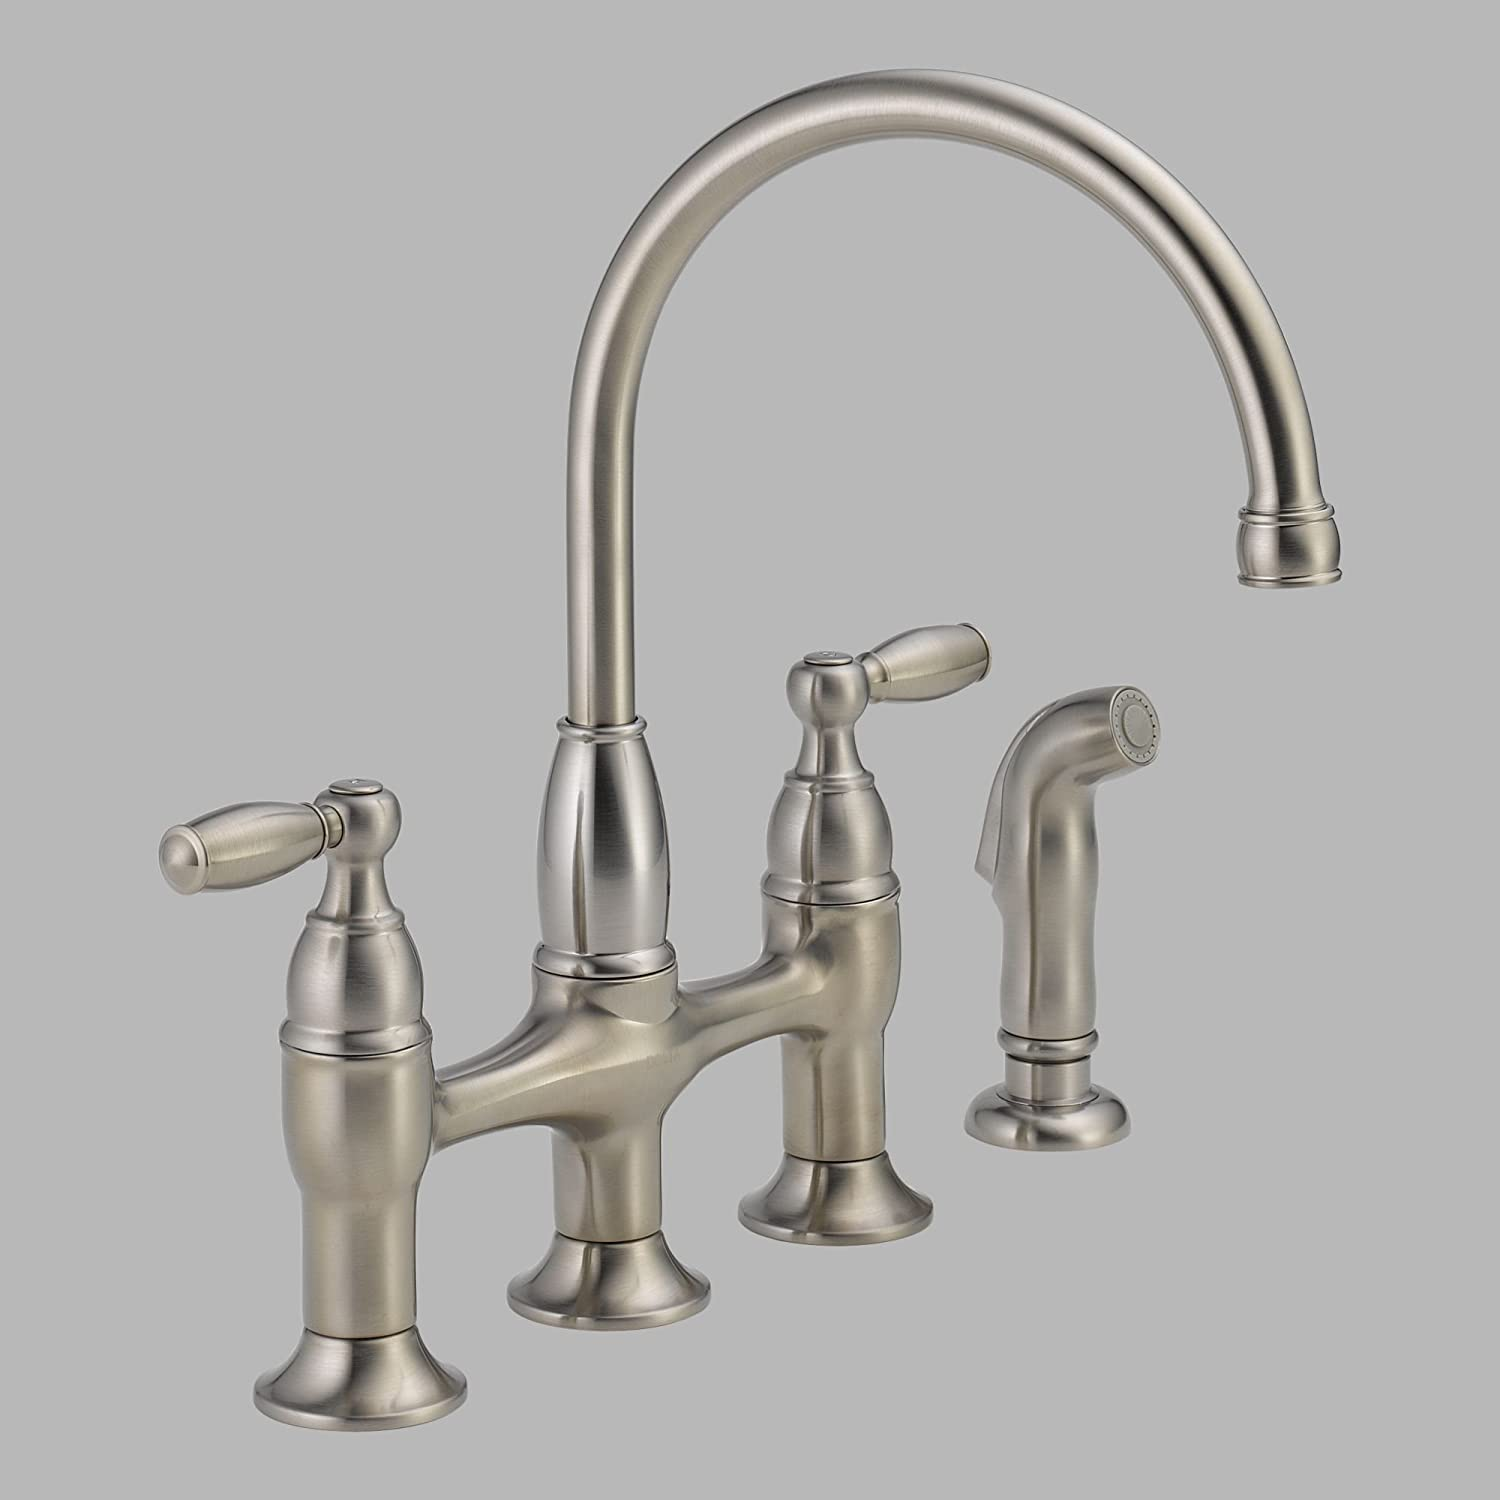 delta bridge faucet Review